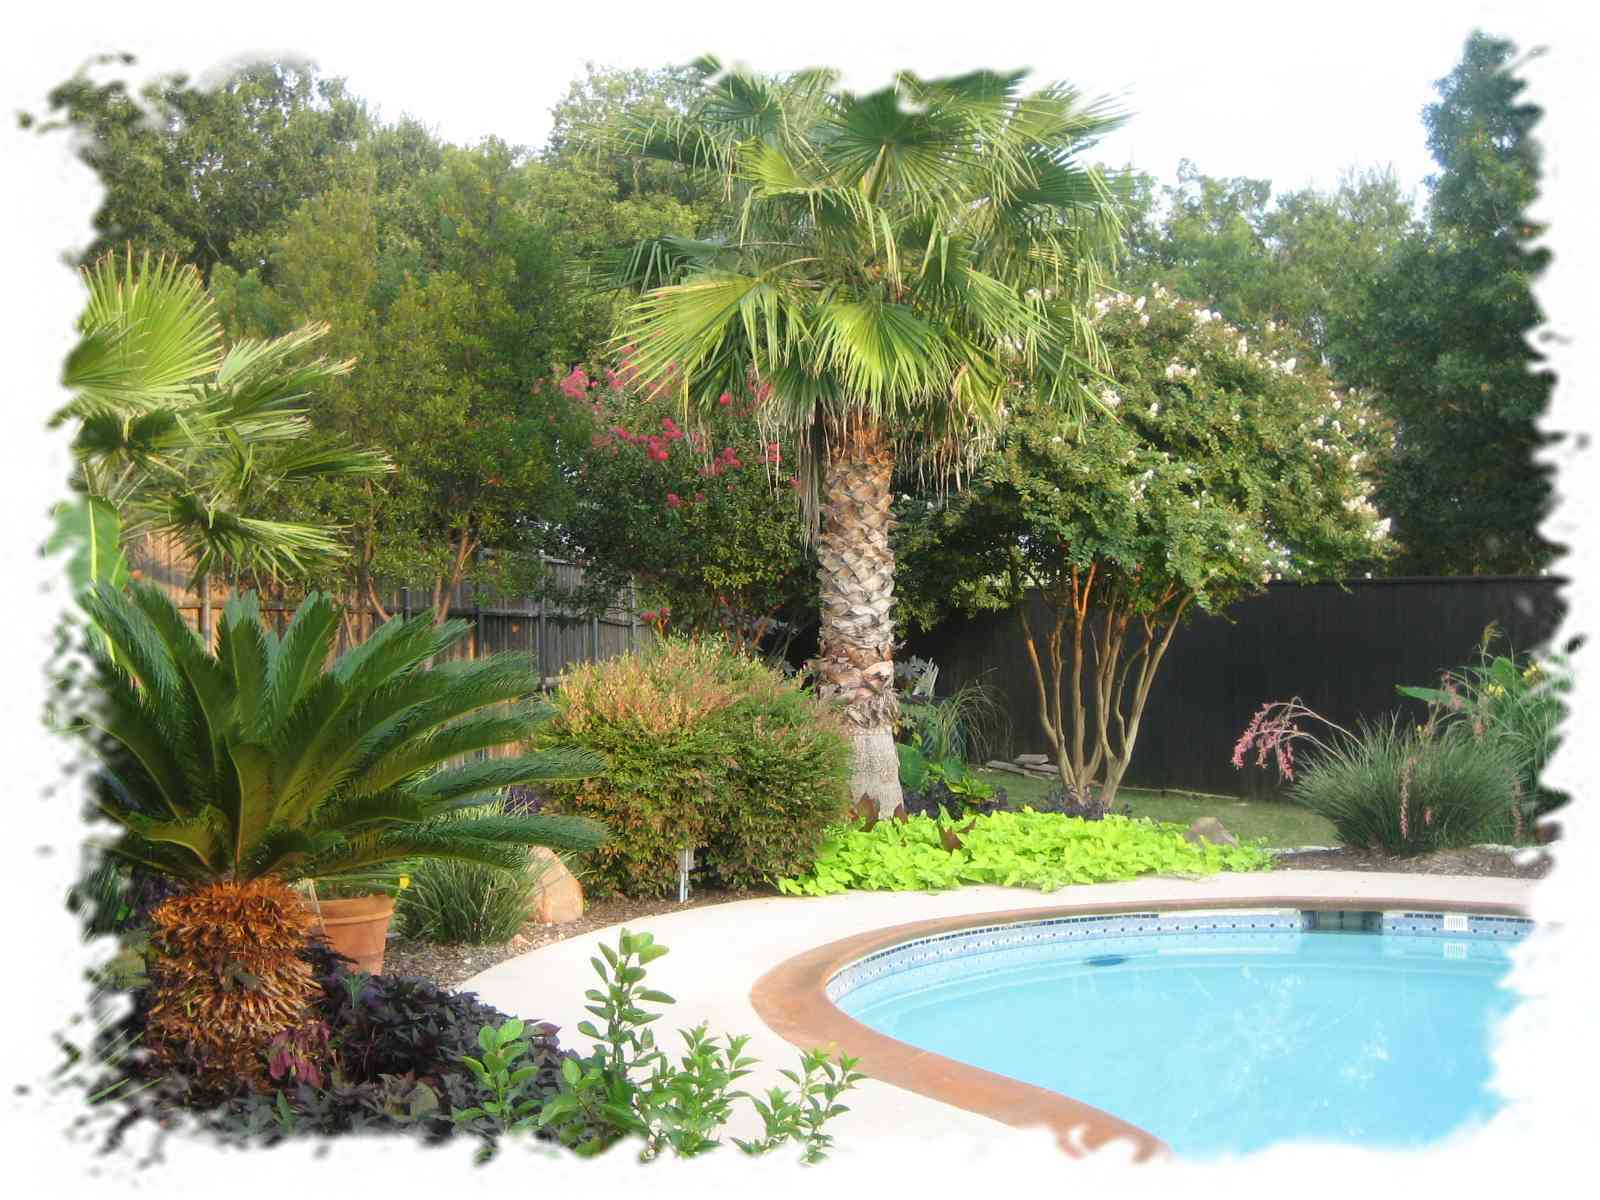 Best tree for backyard - large and beautiful photos. Photo ... Ideas Backyard Resorts on backyard house ideas, backyard sea ideas, backyard lake ideas, backyard spring ideas, backyard tennis ideas, backyard holiday ideas, backyard river ideas, backyard fall ideas, backyard park ideas, backyard ocean ideas, backyard country ideas, backyard catering ideas, backyard construction ideas, backyard family ideas, backyard destination ideas, backyard fitness ideas, backyard winter ideas, backyard outdoor ideas, backyard campground ideas, backyard retreat ideas,